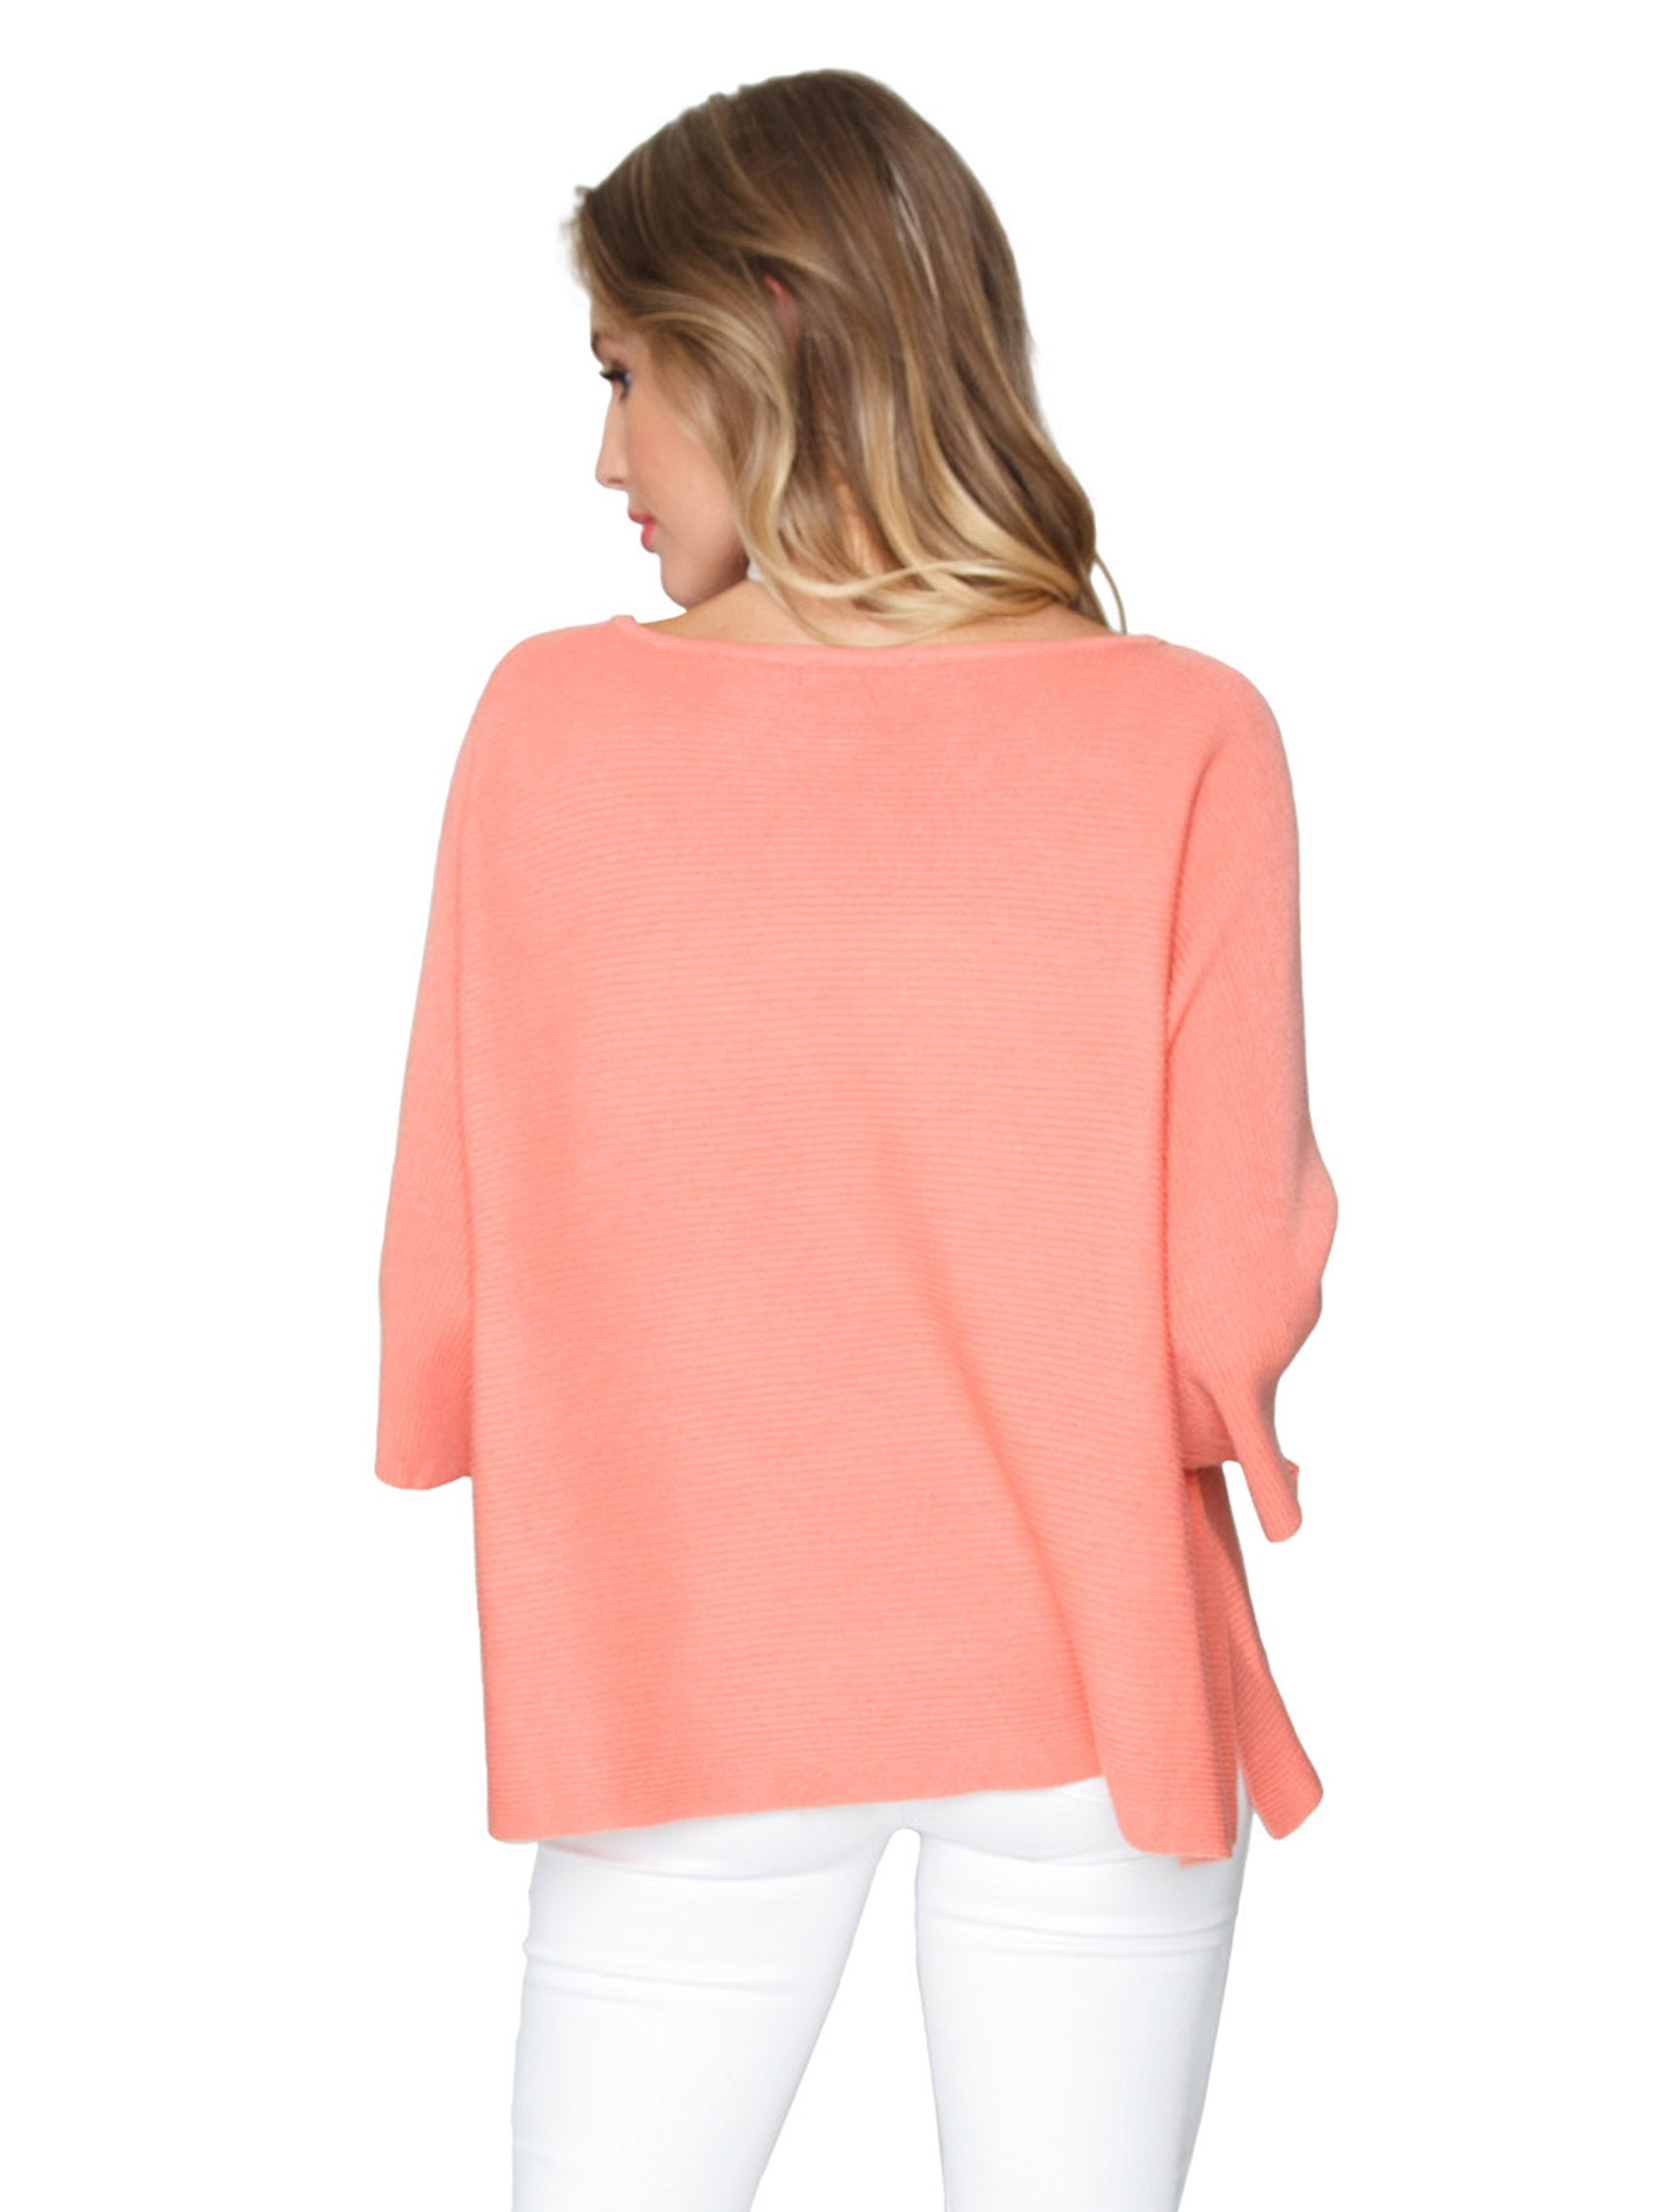 Women outfit in a top rental from FashionPass called Wide Sleeve Knit Top